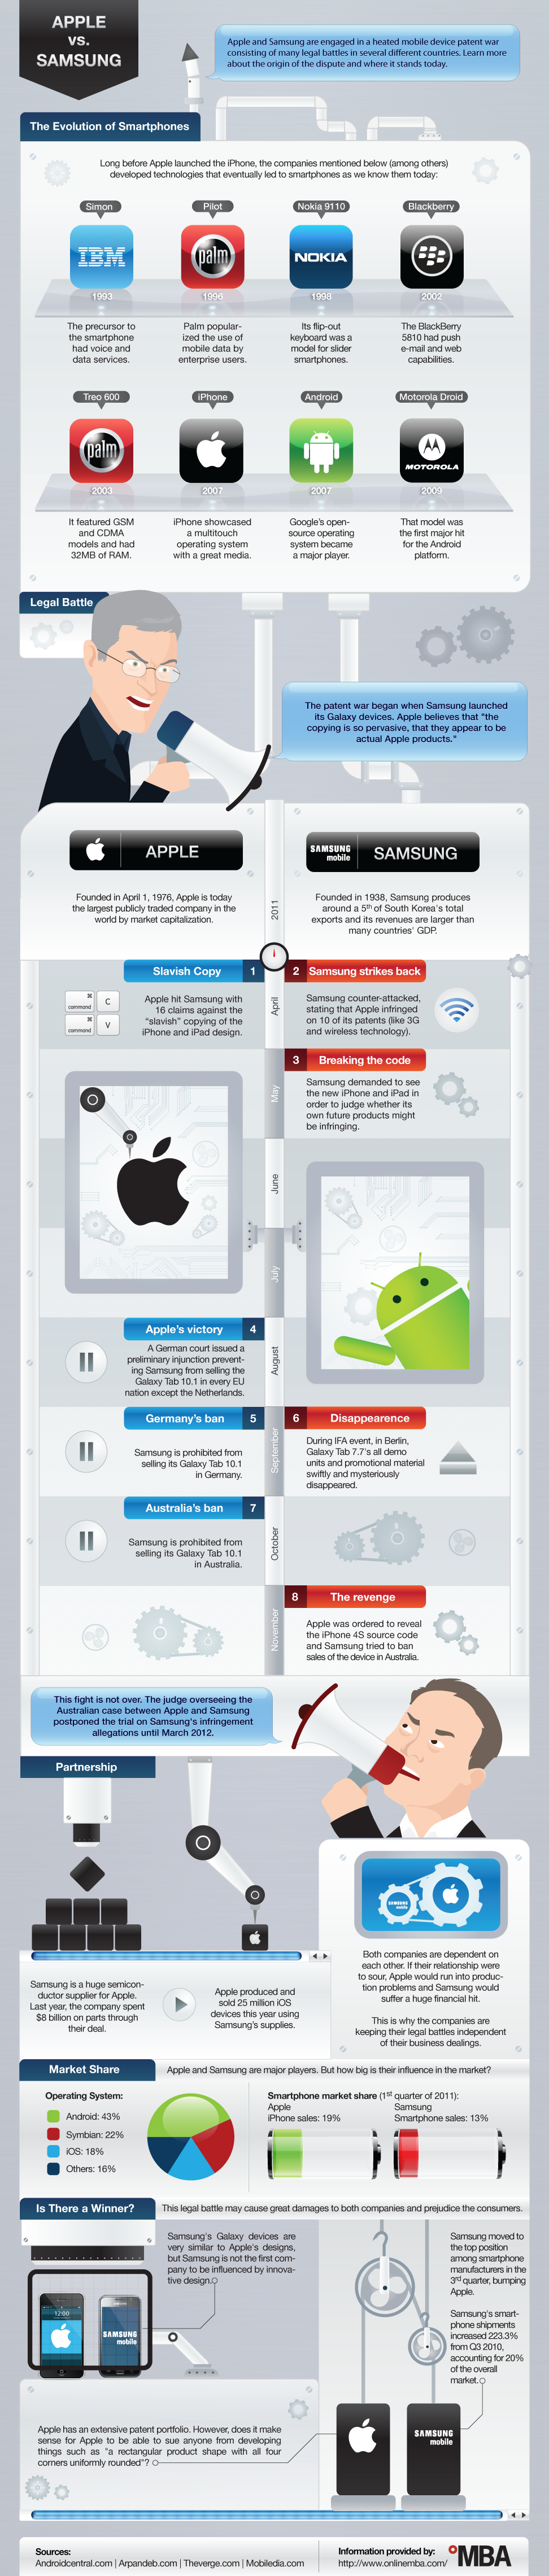 Apple Vs Samsung Patent Wars